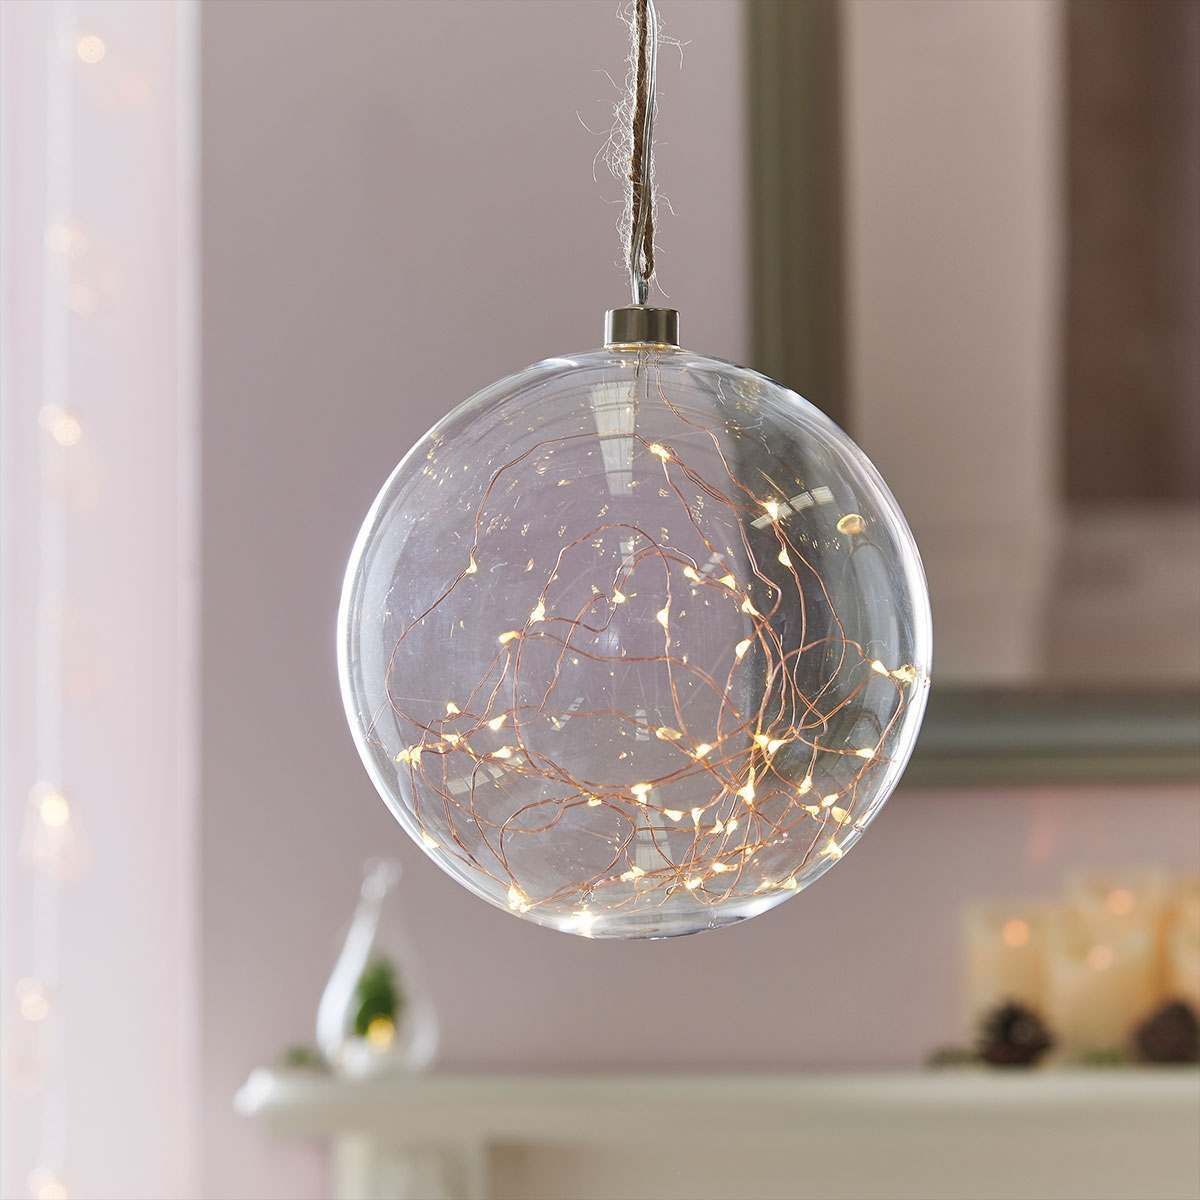 Indoor hanging glass ball with copper wire lights for Suspension boule verre